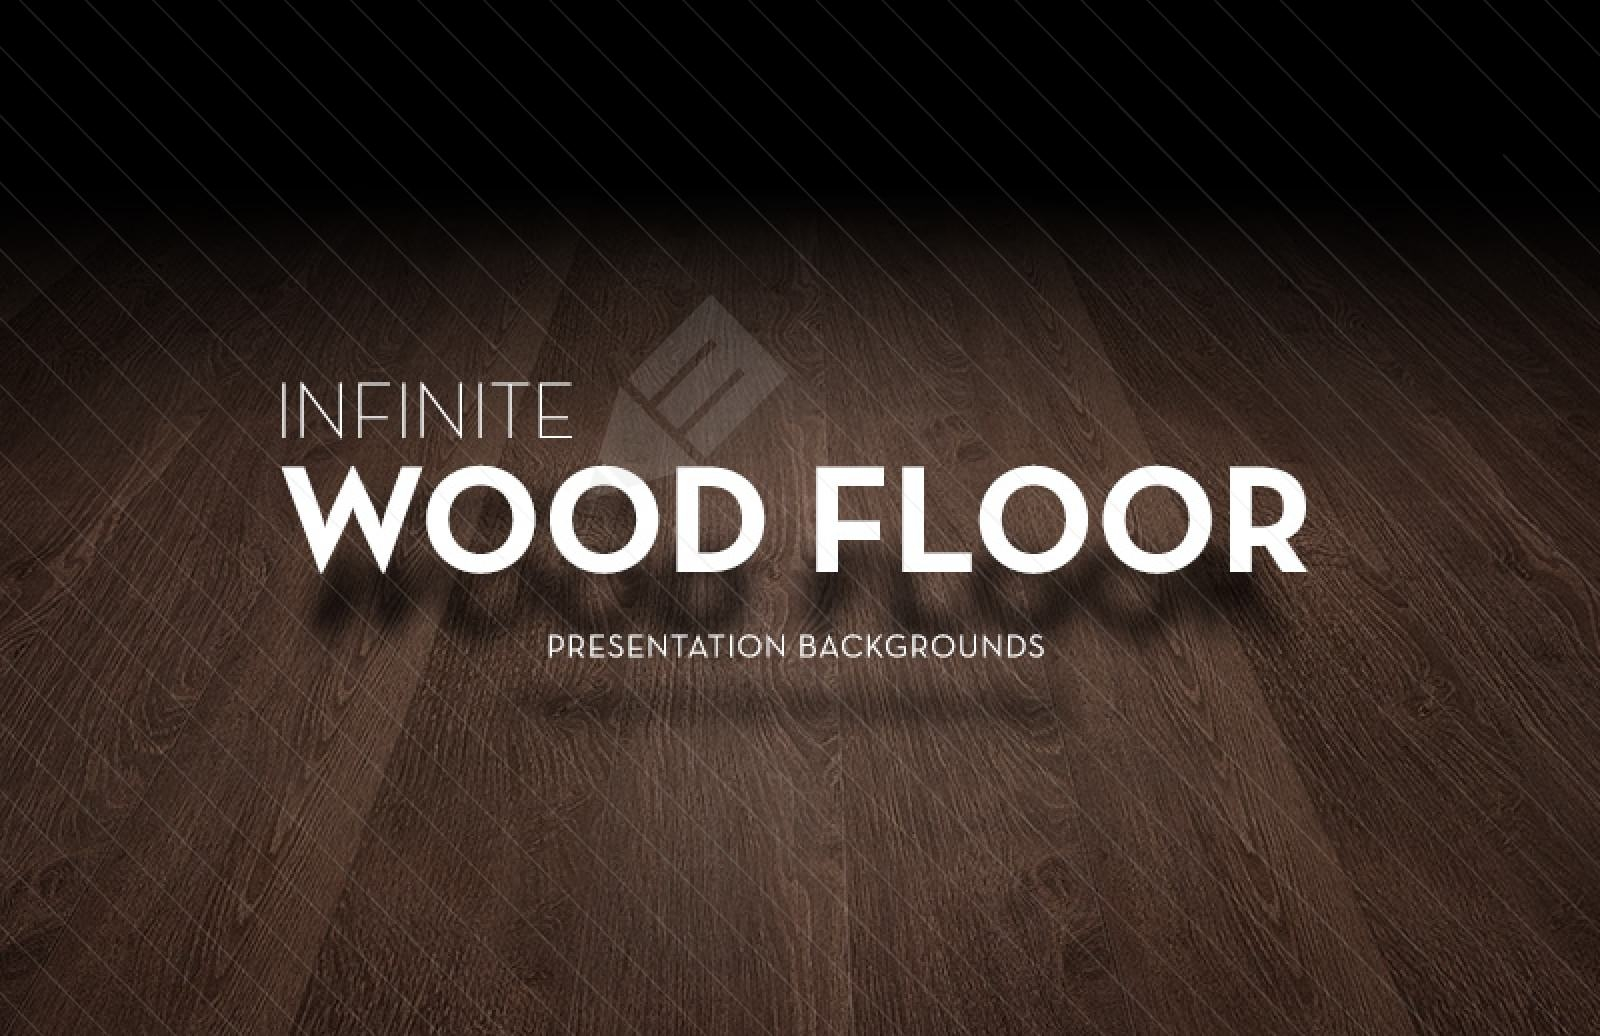 Infinite Wooden Floor Presentation Backgrounds